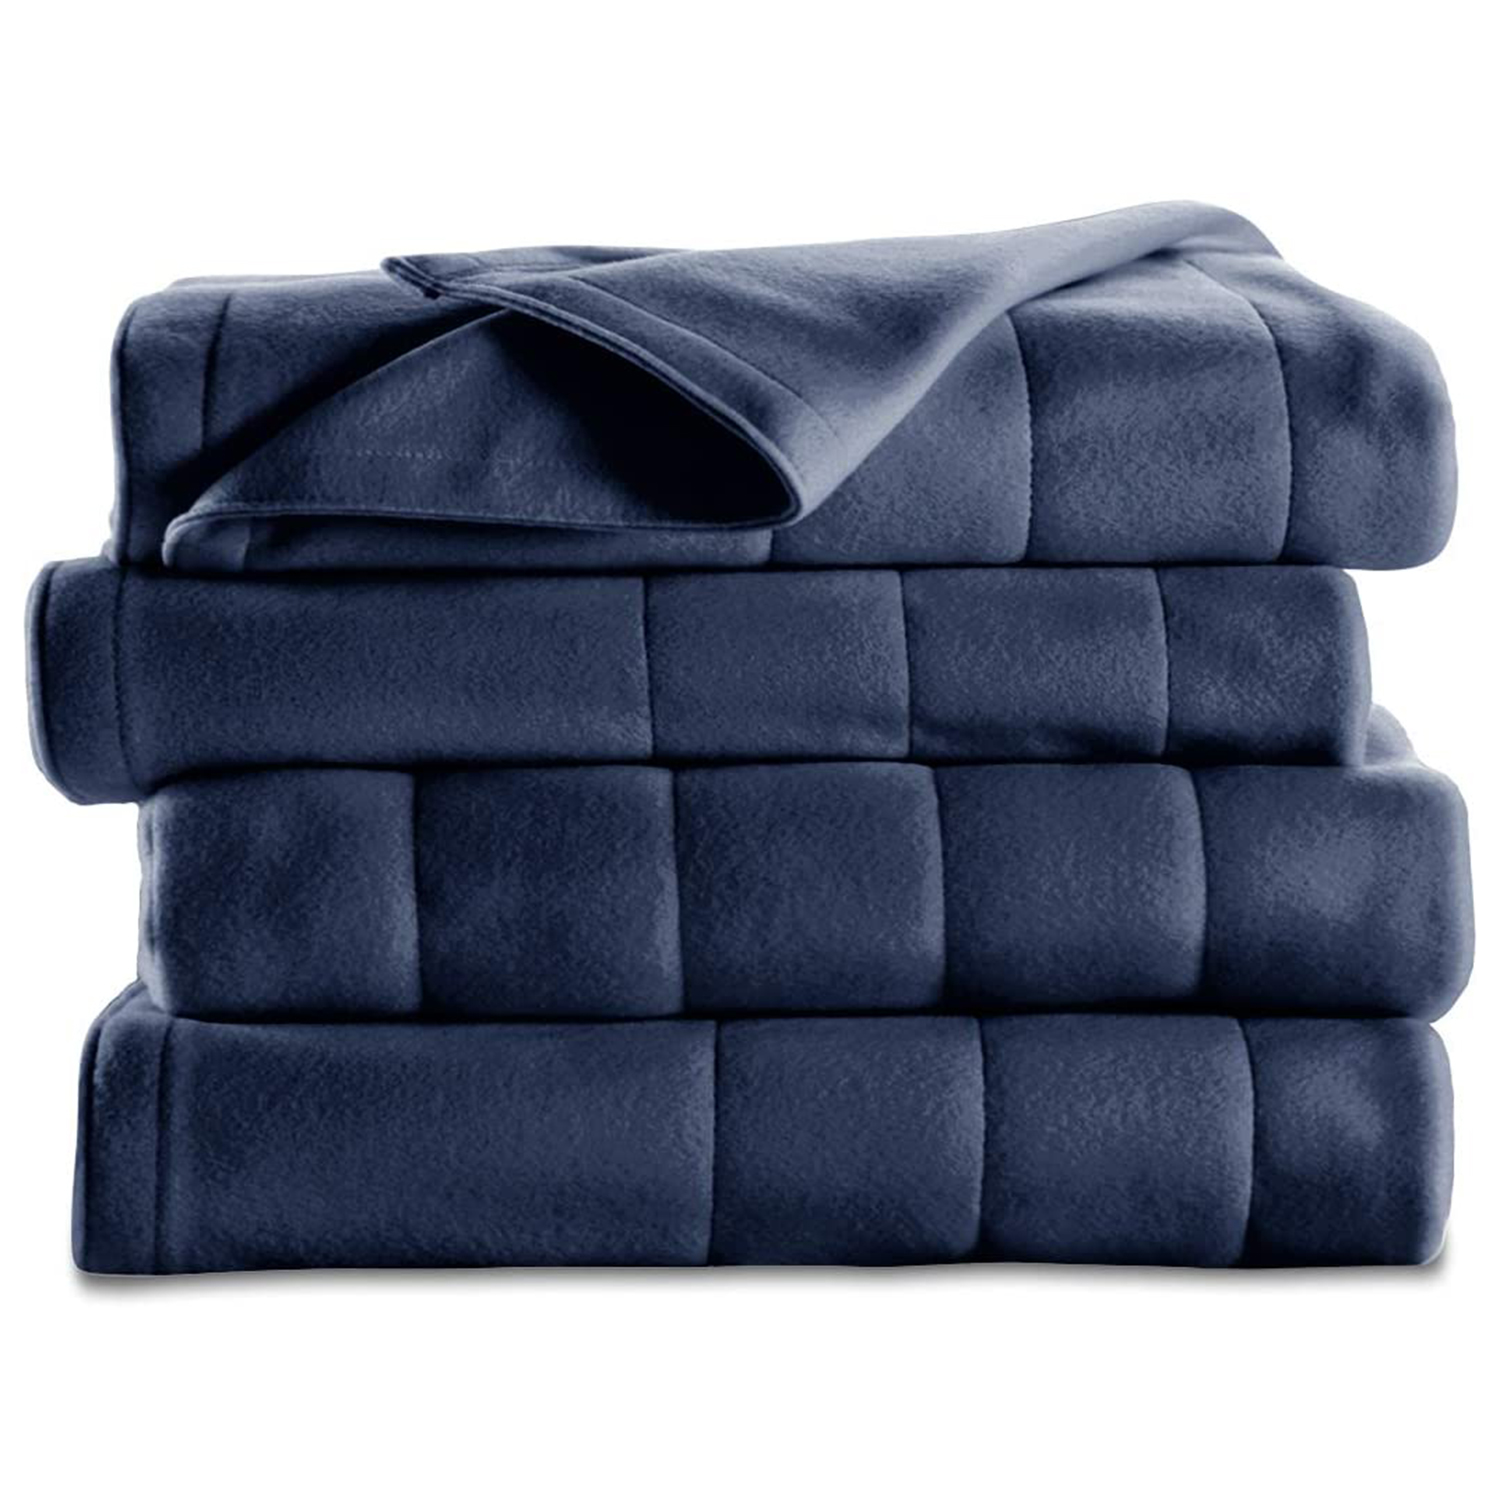 Best Heated Electric Blankets On Amazon According To Reviewers Real Simple